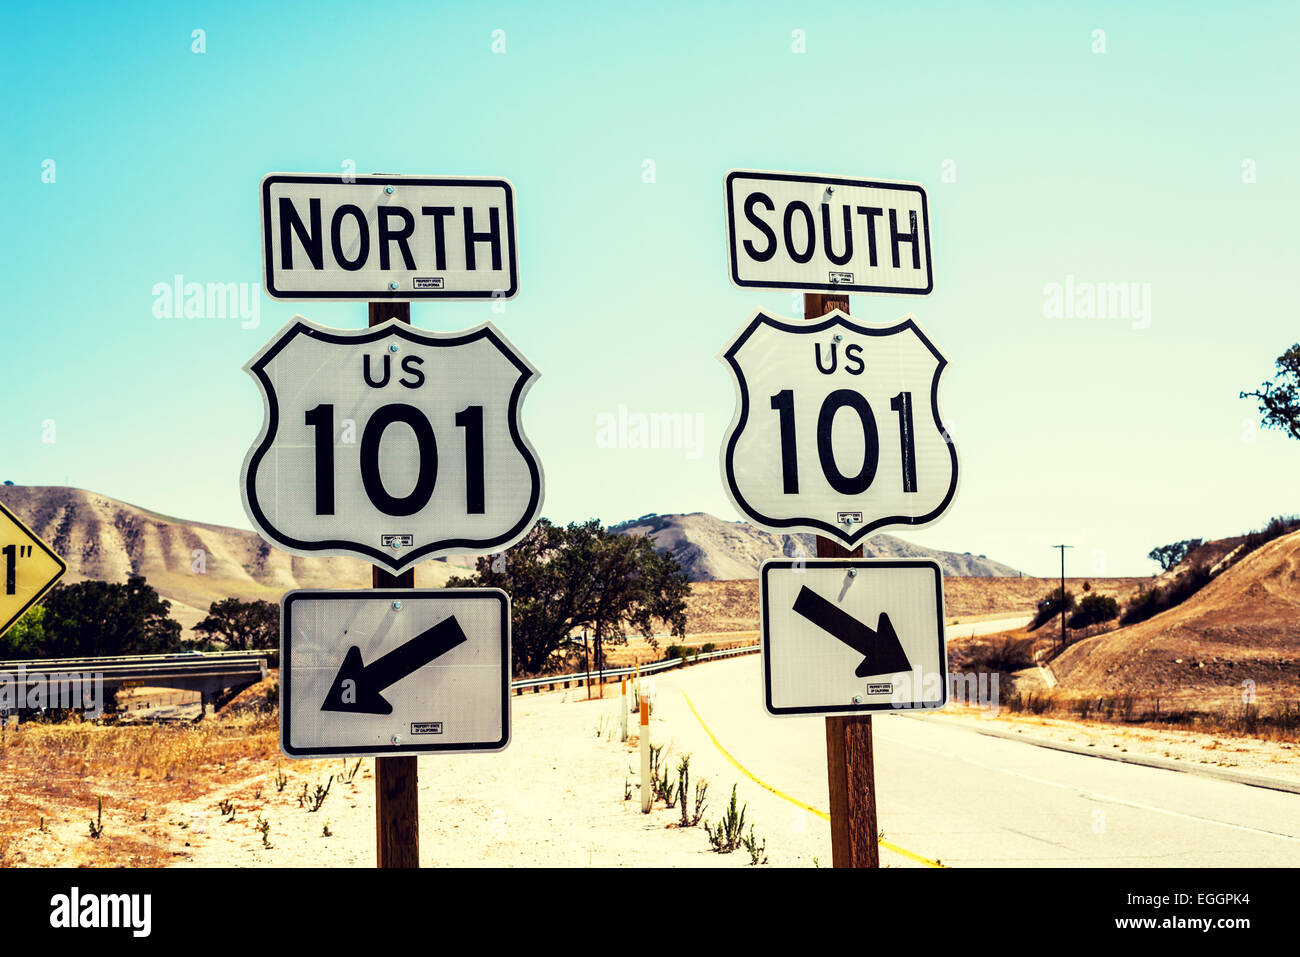 U.S. Highway 101 North and South road signs. California, United States. - Stock Image